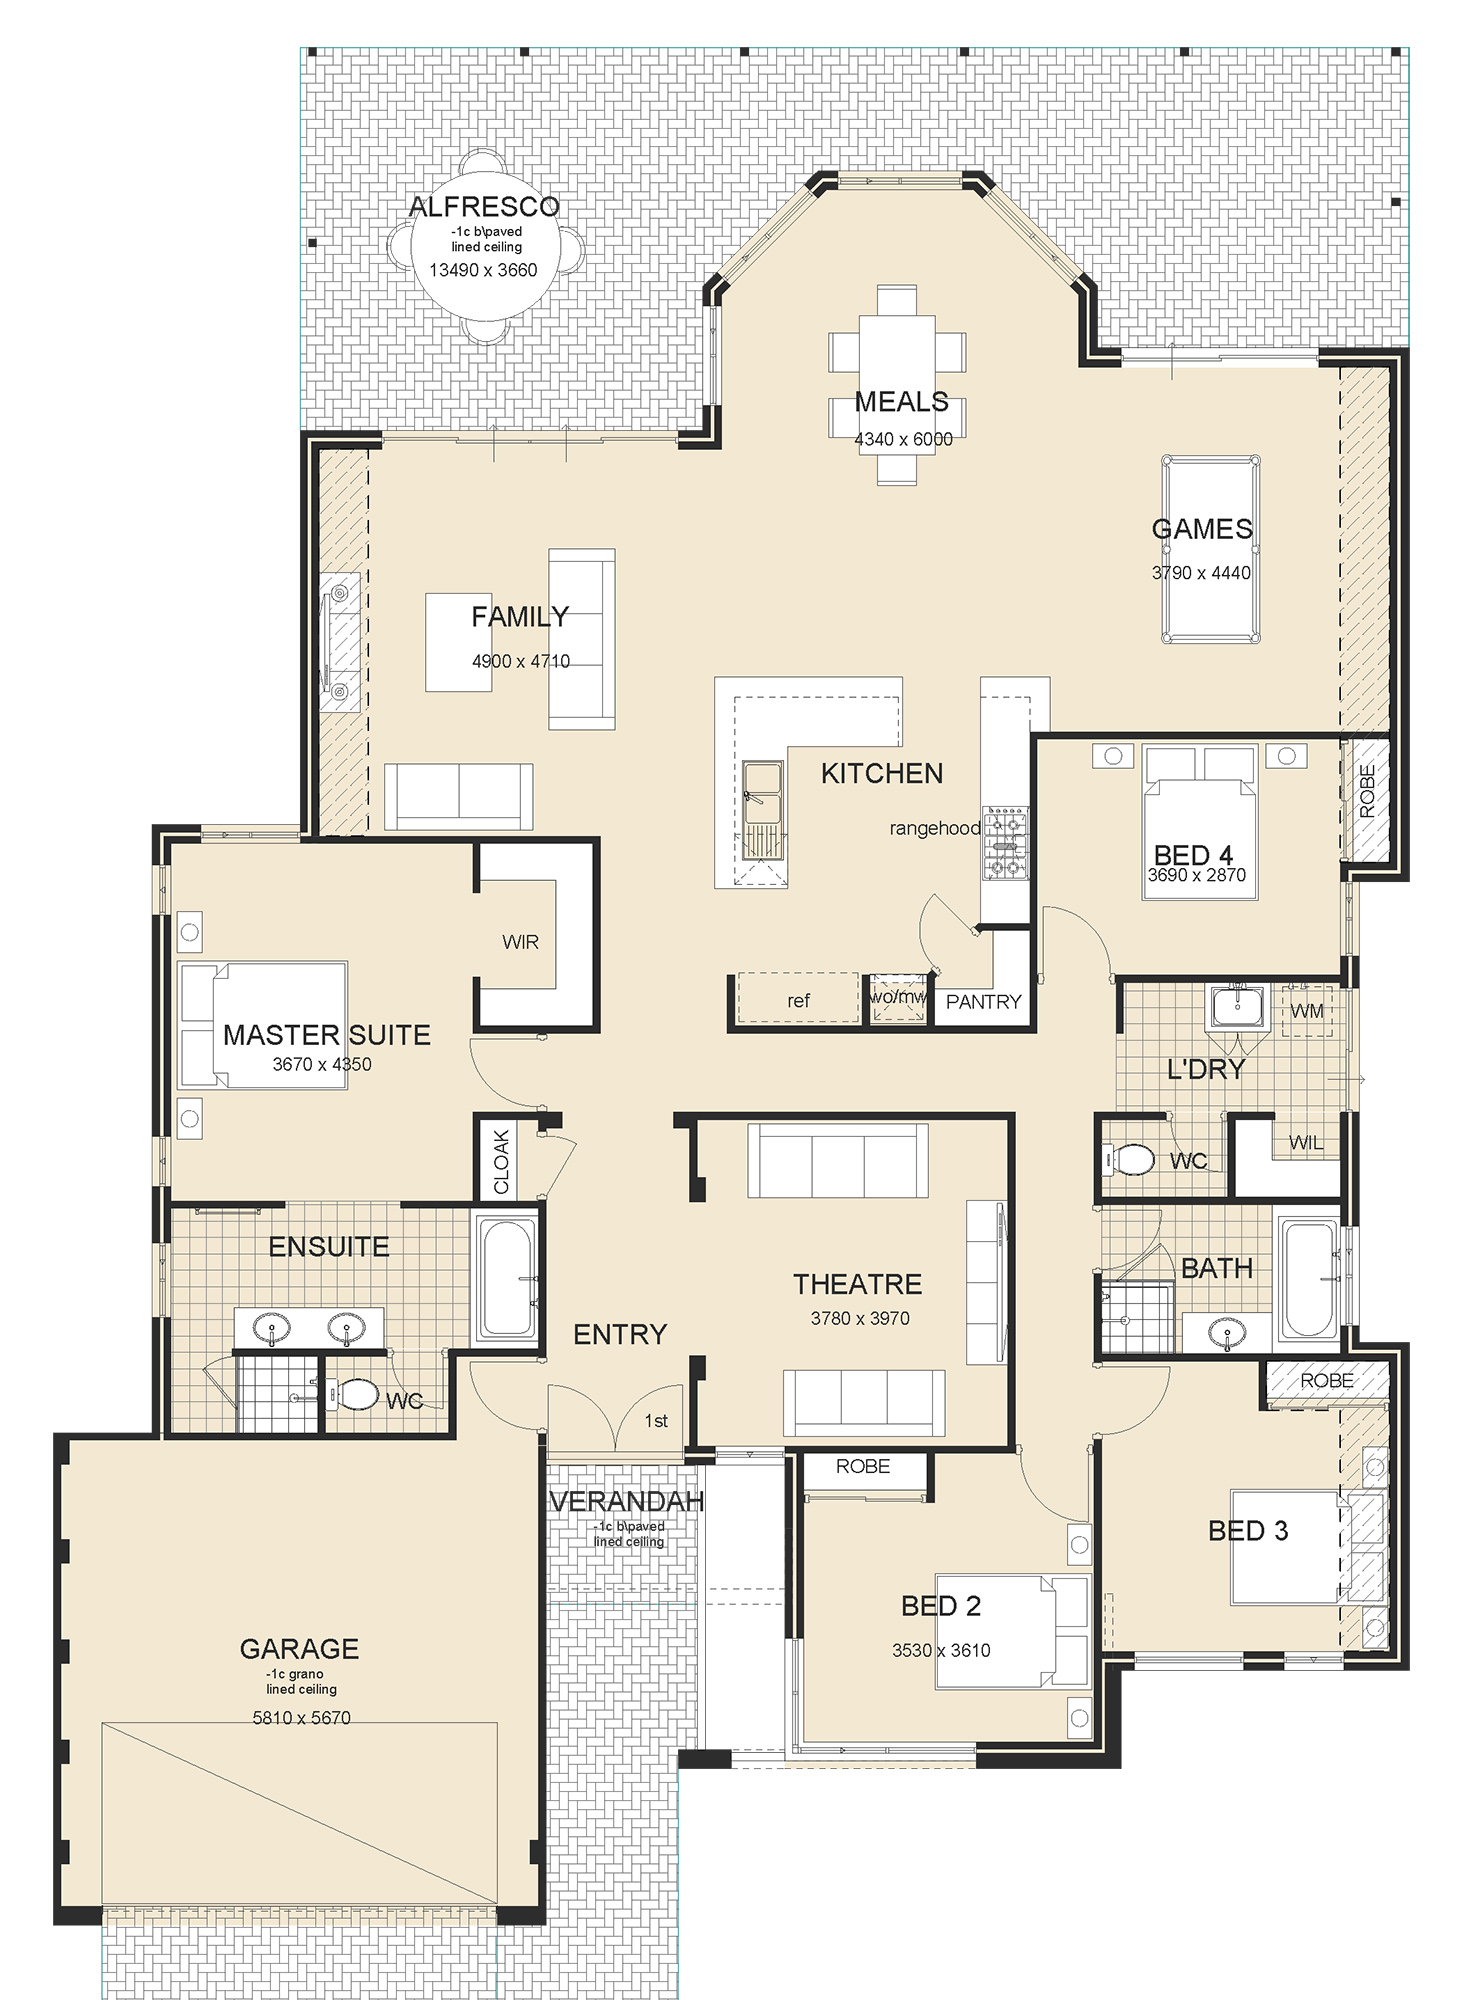 Nautilus house plan sample perth